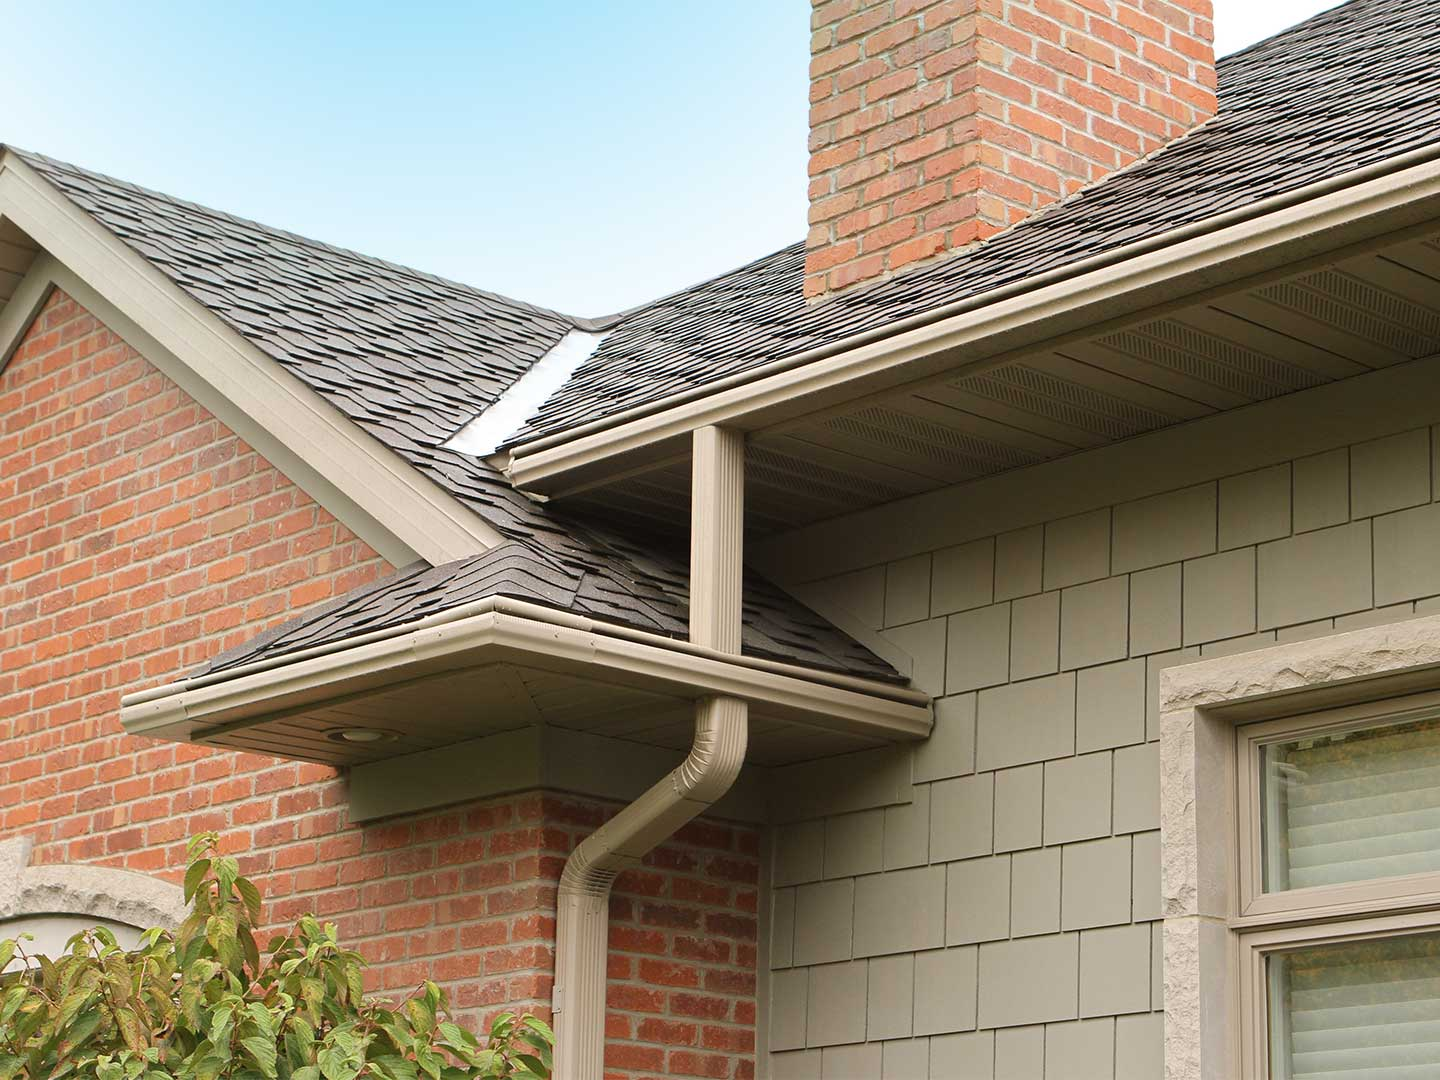 LeafGuard® gutters by Englert is the original and only one-piece seamless gutter system. Its built-in hood covers the gutter bottom and deflects leaves and other debris. The hood is not an add-on, but an integral part of the gutter itself.